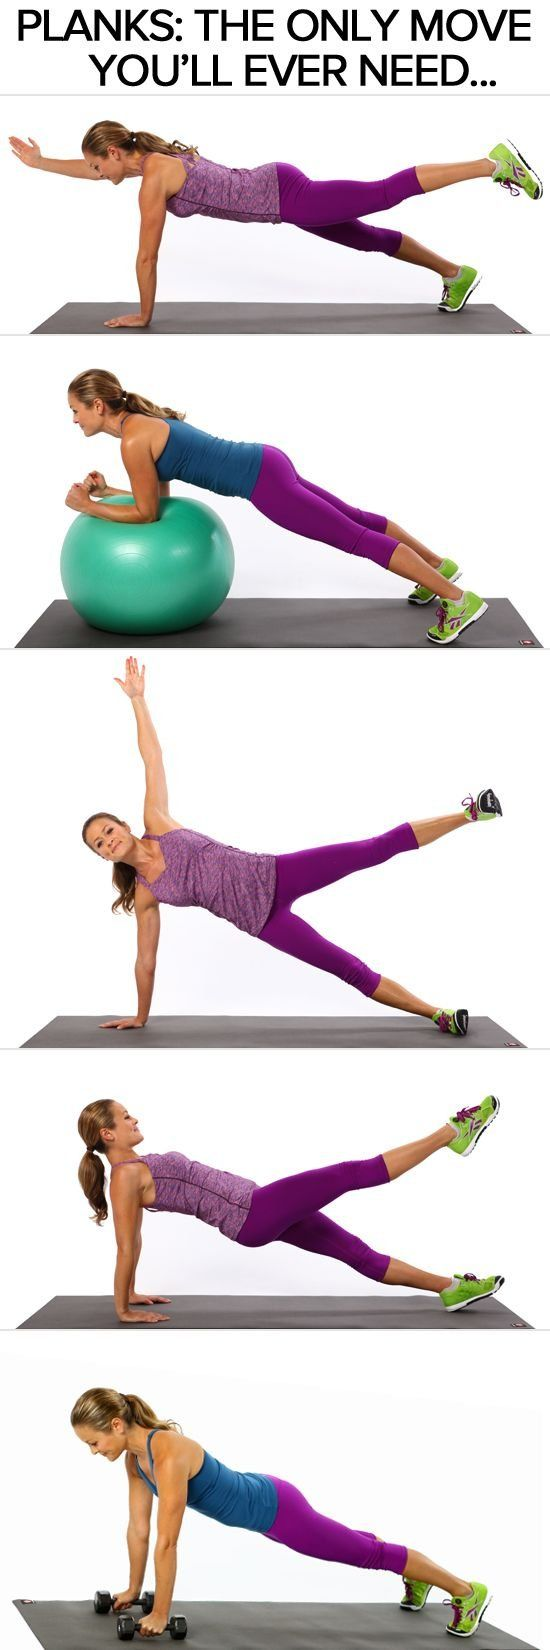 A guide to planking - great for core strength!